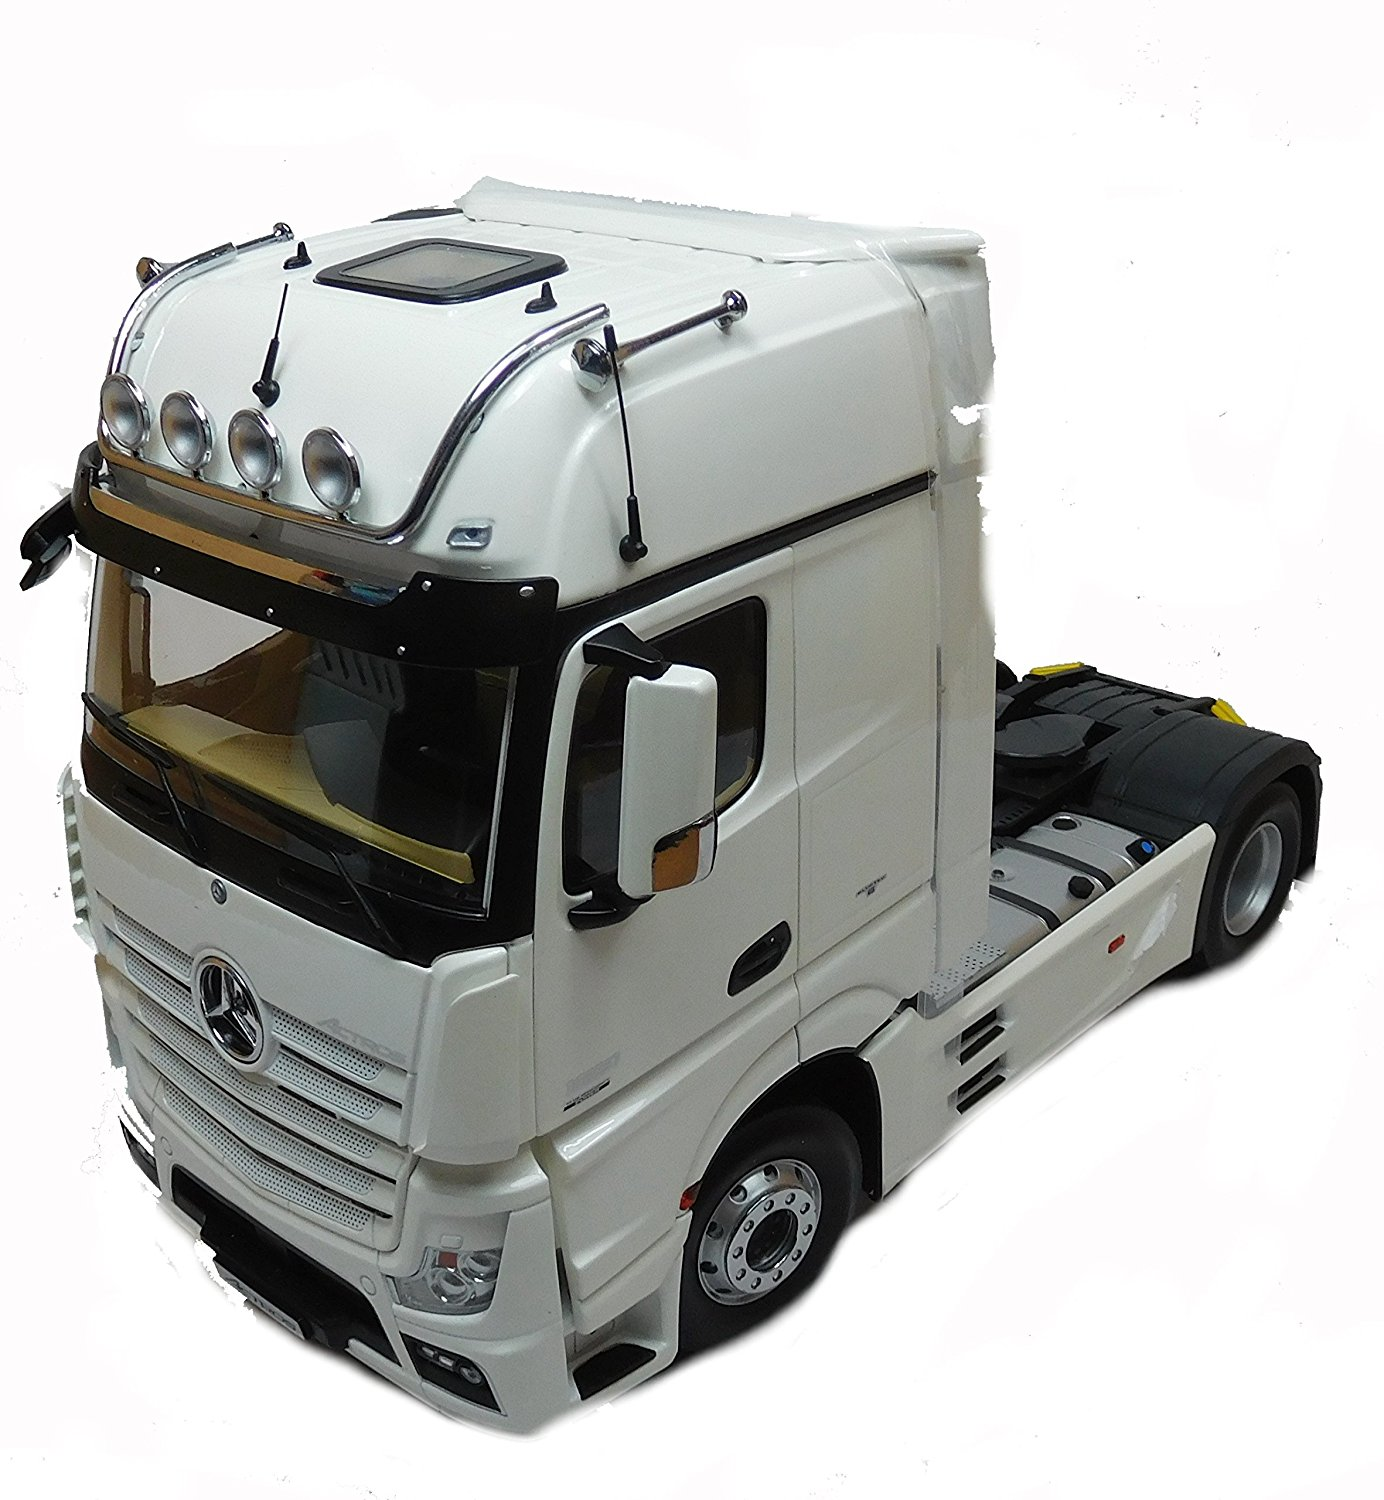 Cheap Actros 3344 Find Actros 3344 Deals On Line At Alibaba Com